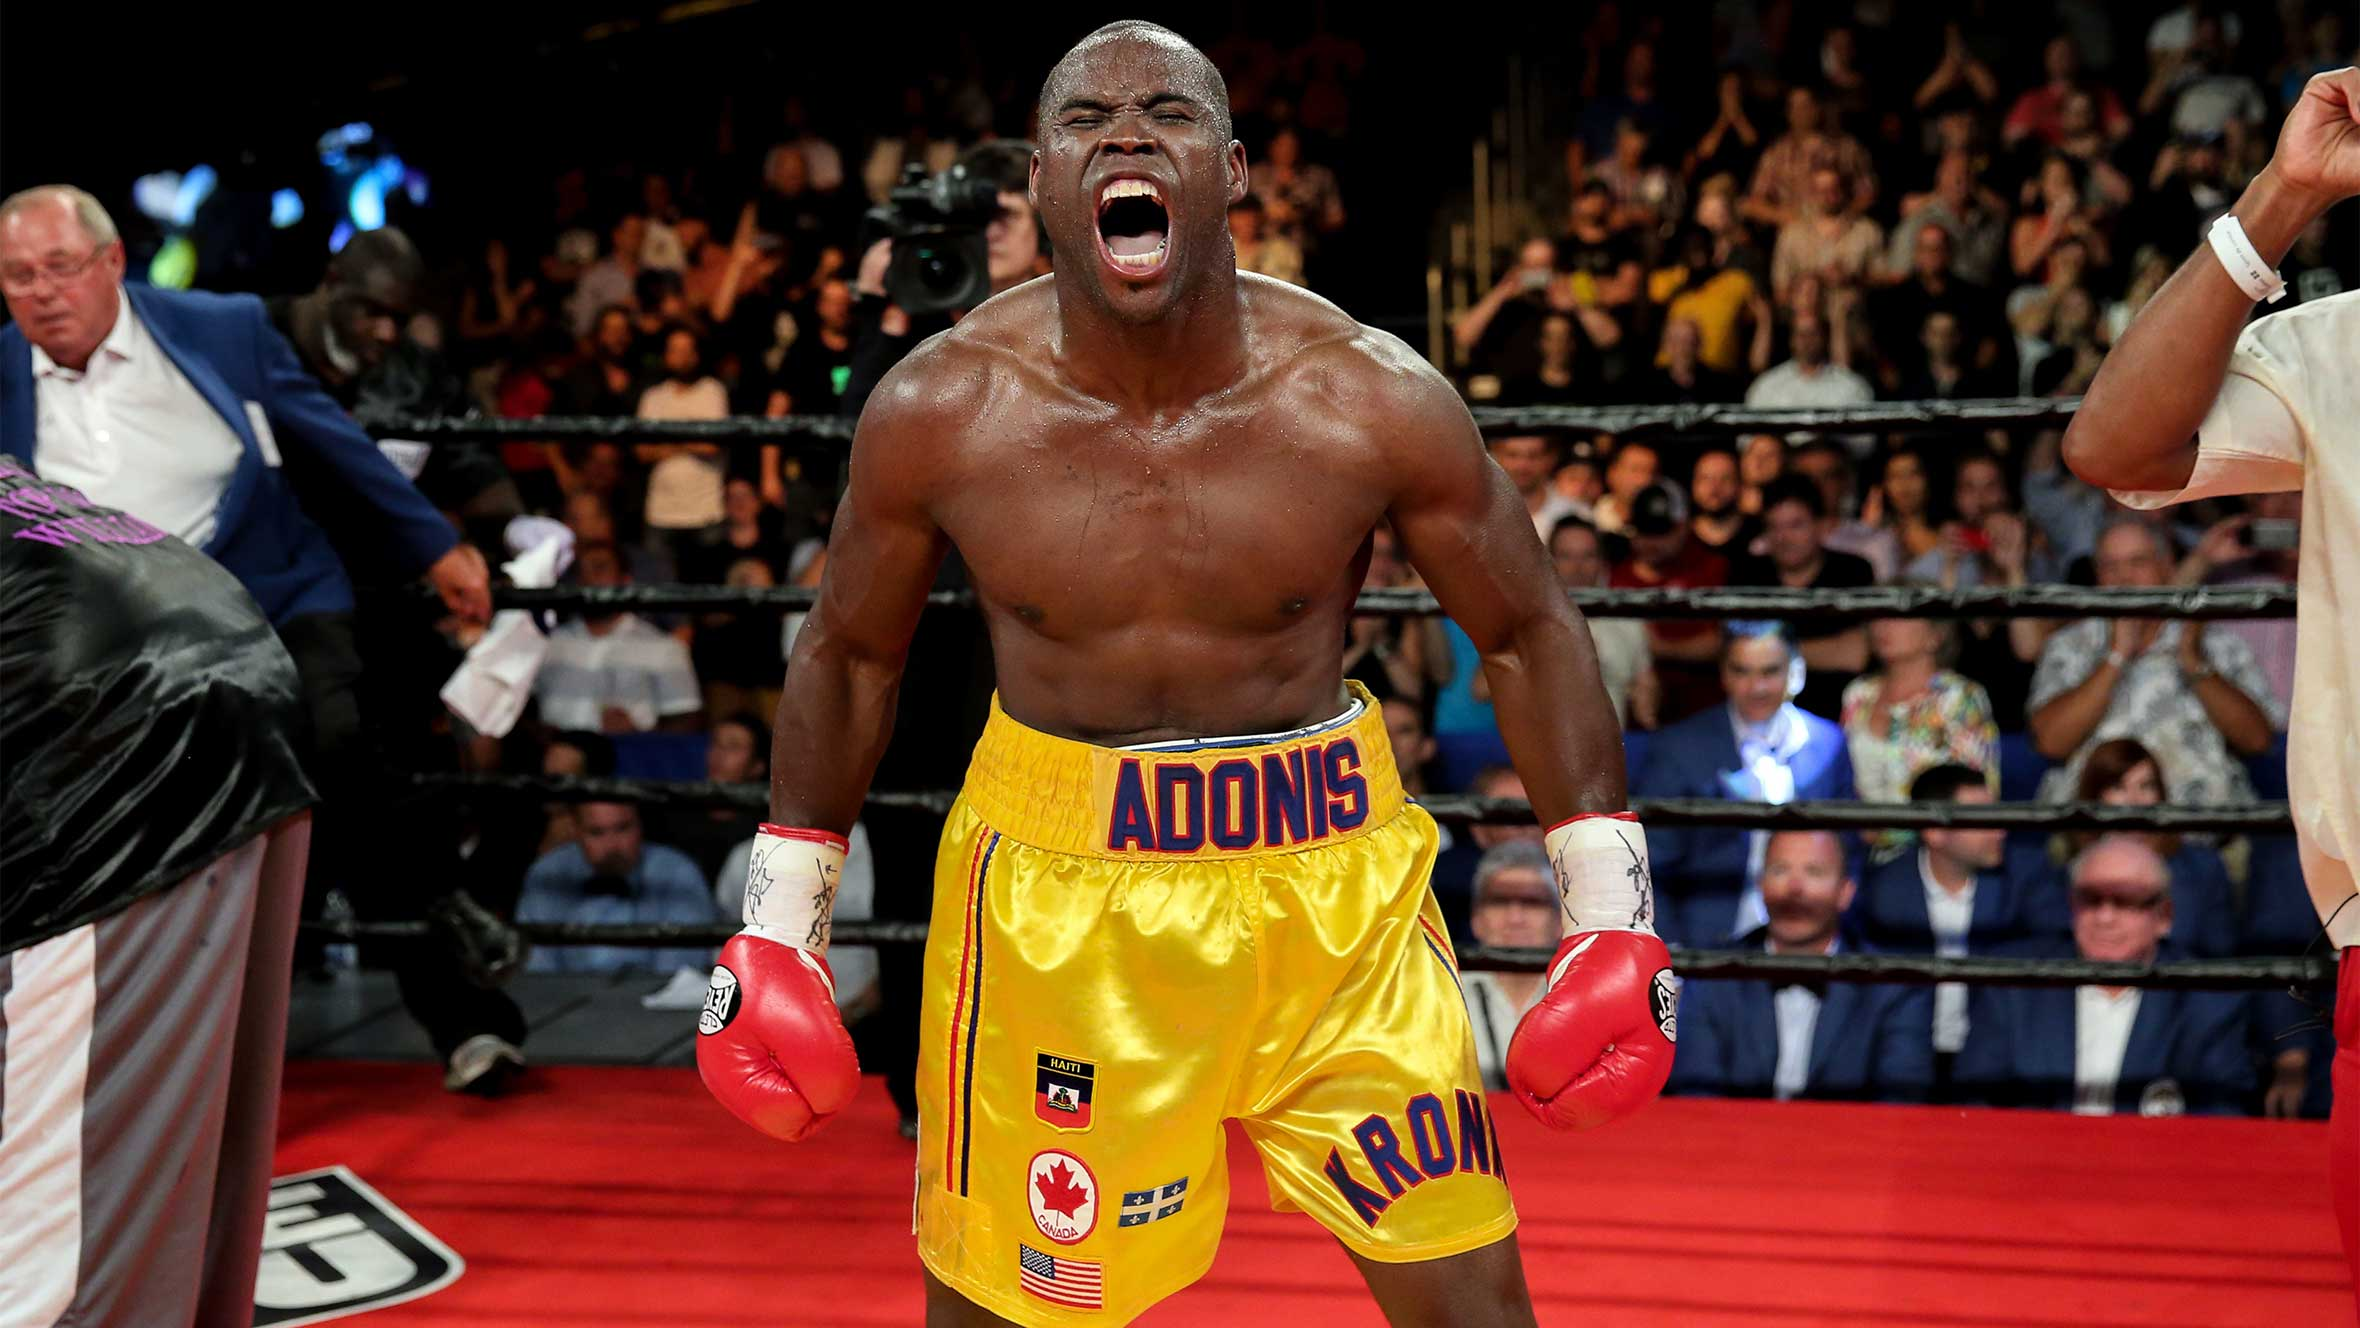 Adonis Stevenson in the eyes of many has a lot yet to prove. Photo Credit: Premier Boxing Champions